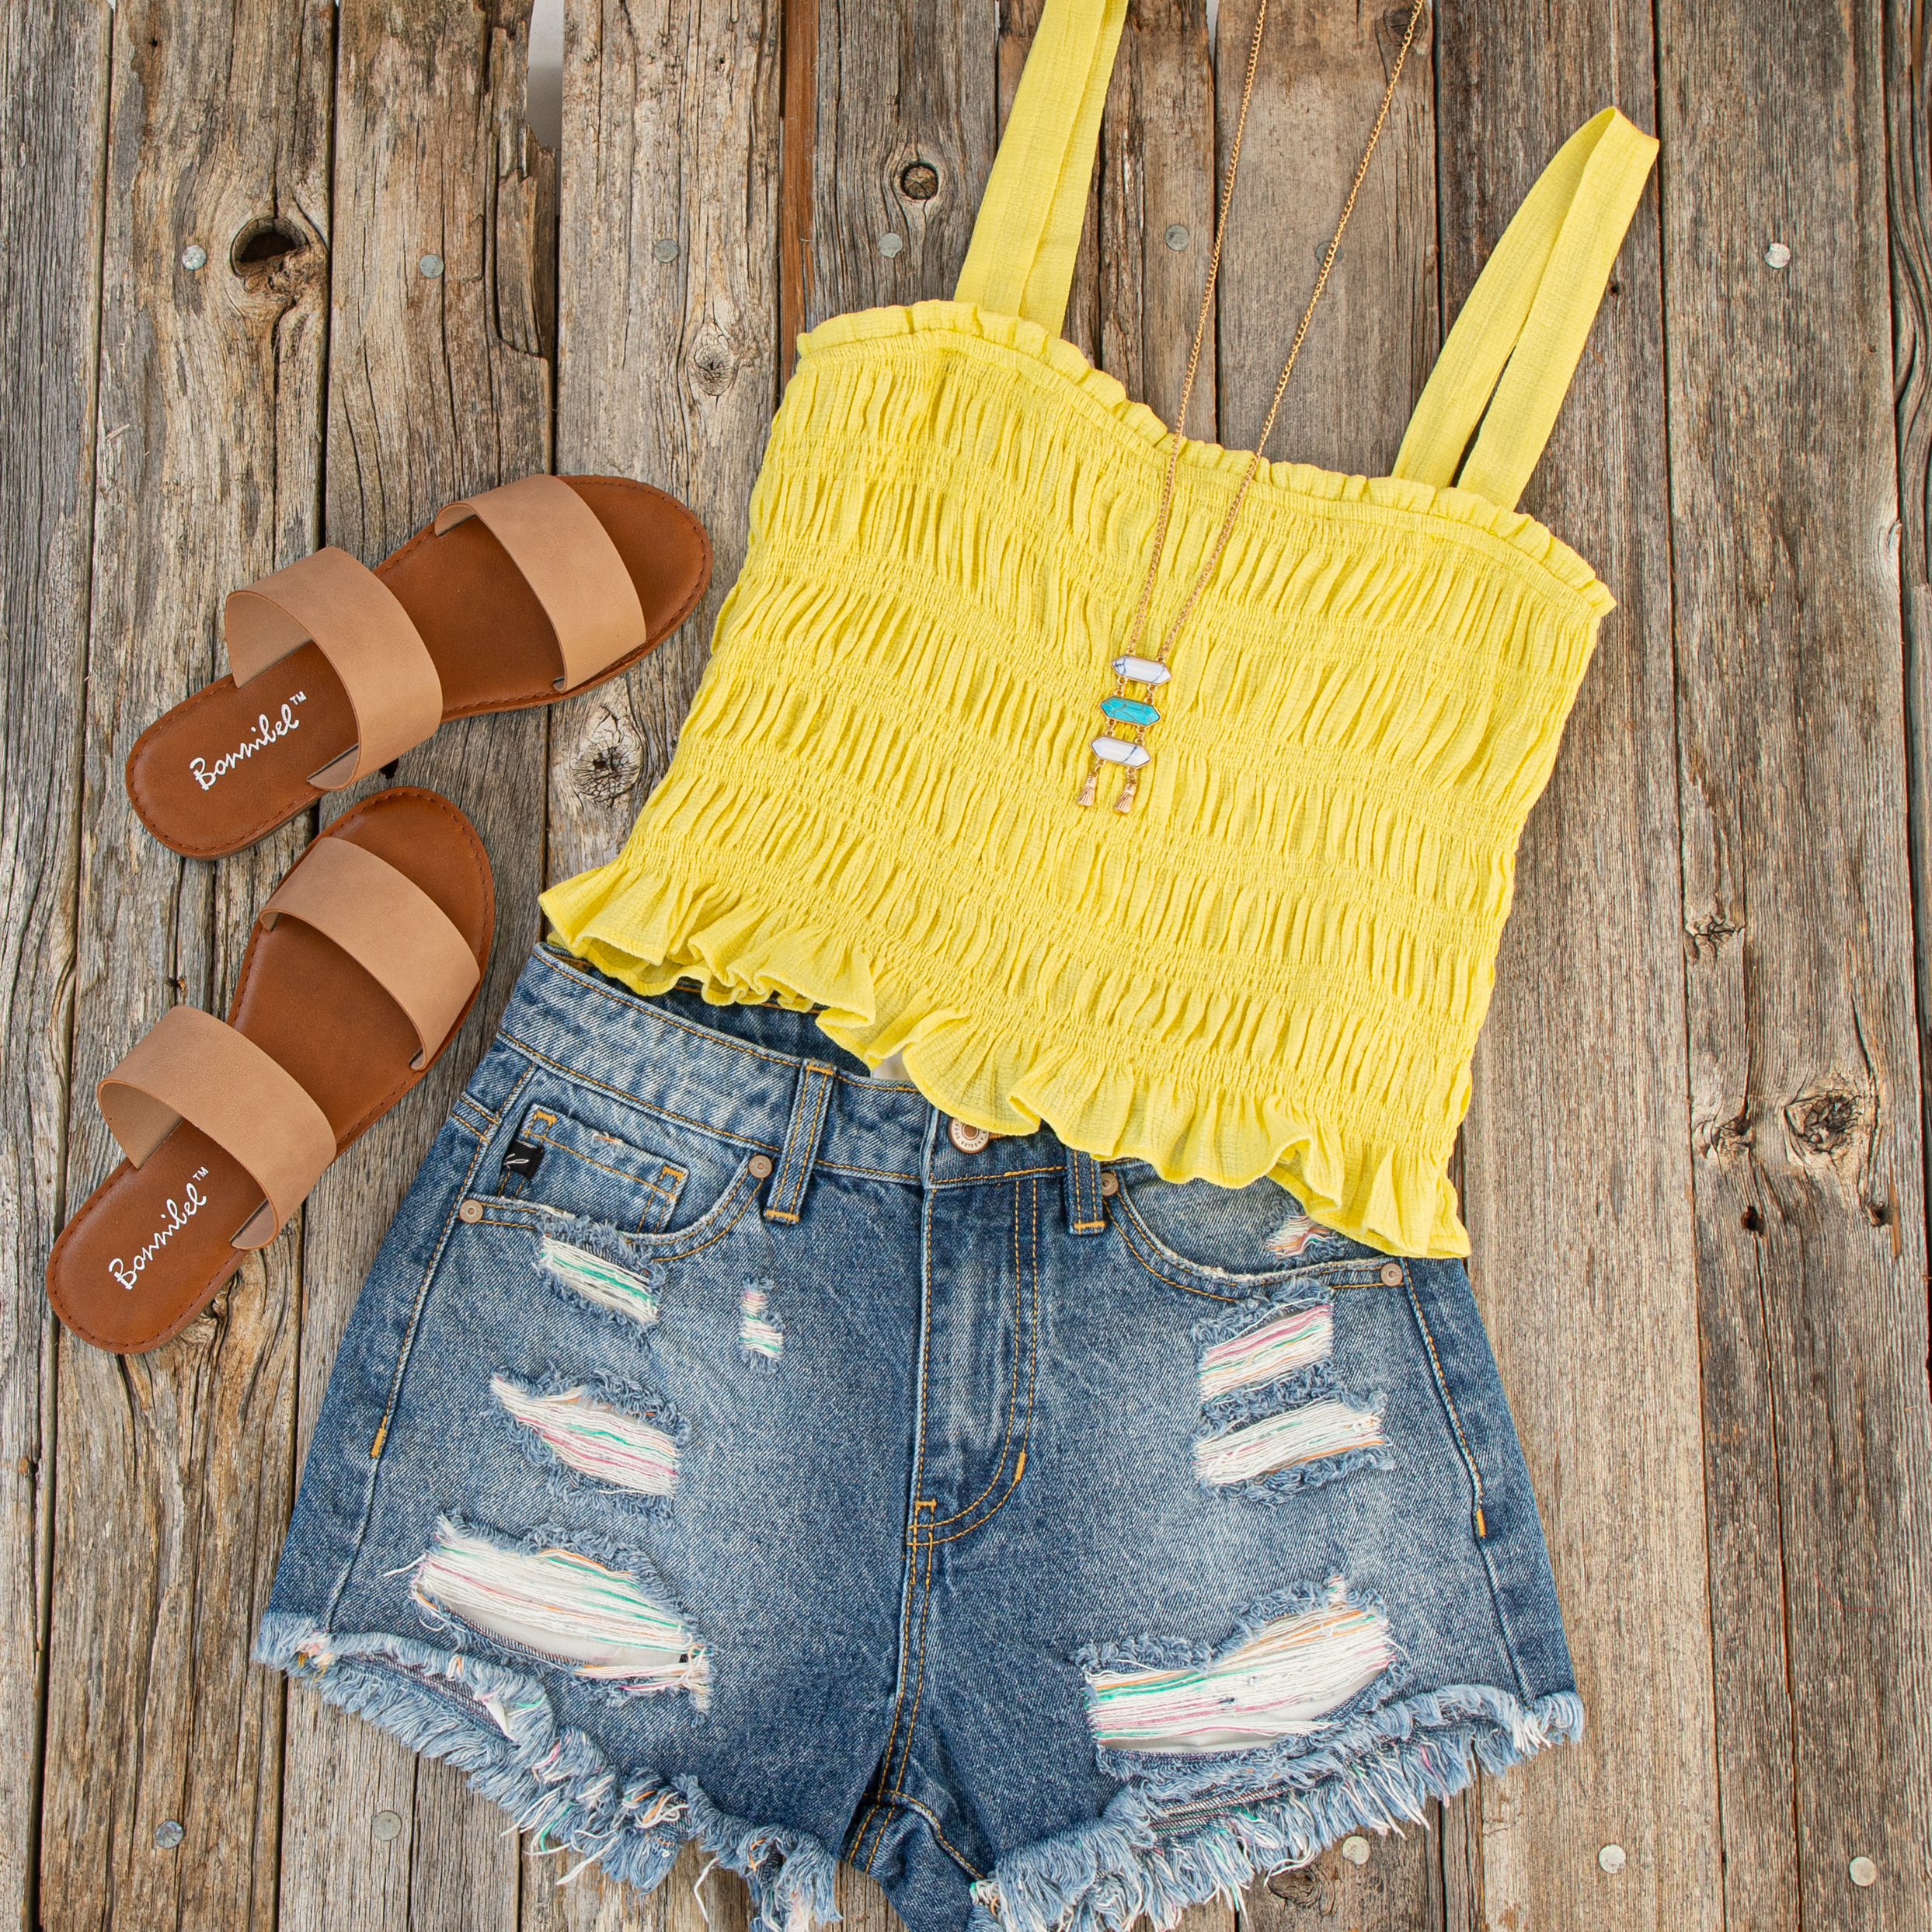 Medium Wash Denim Distressed Shorts with Colored String Detail